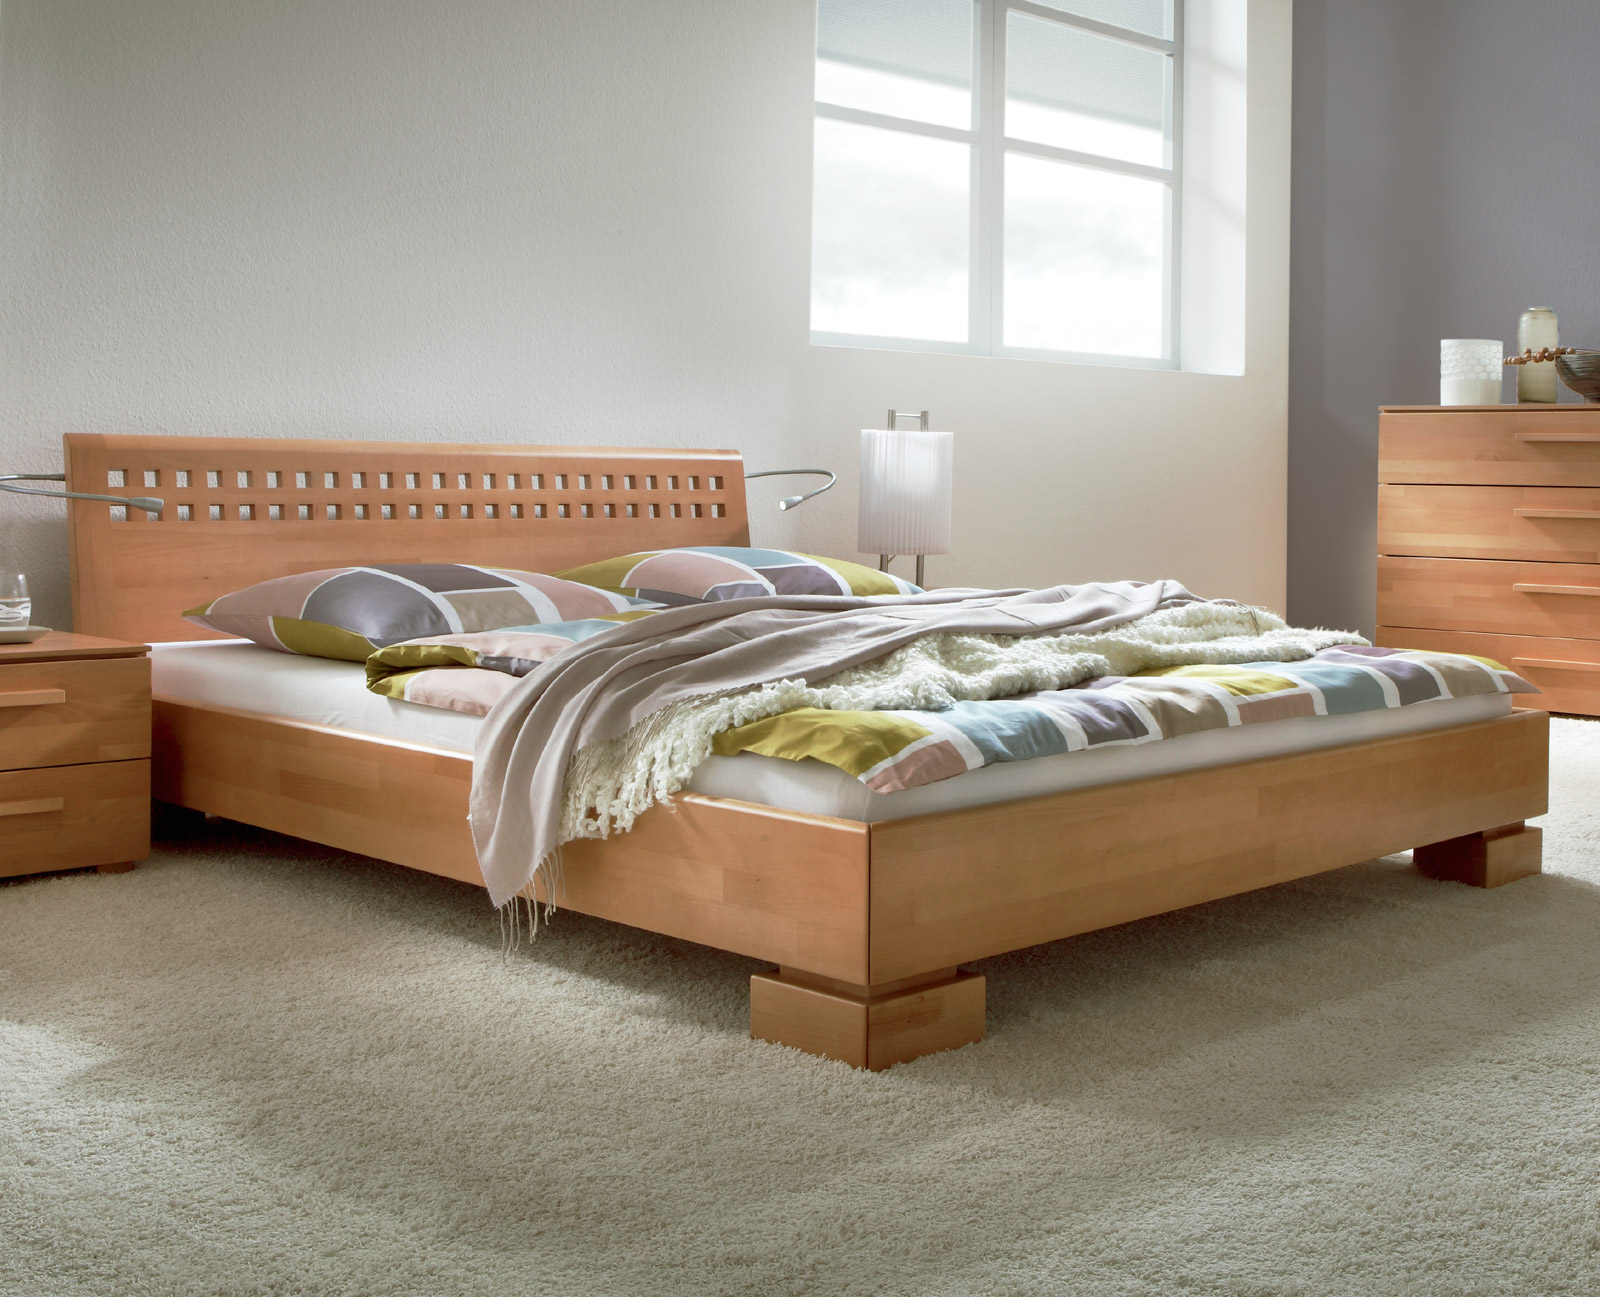 hochwertiges bett aus massiver buche lackiert bett lima. Black Bedroom Furniture Sets. Home Design Ideas